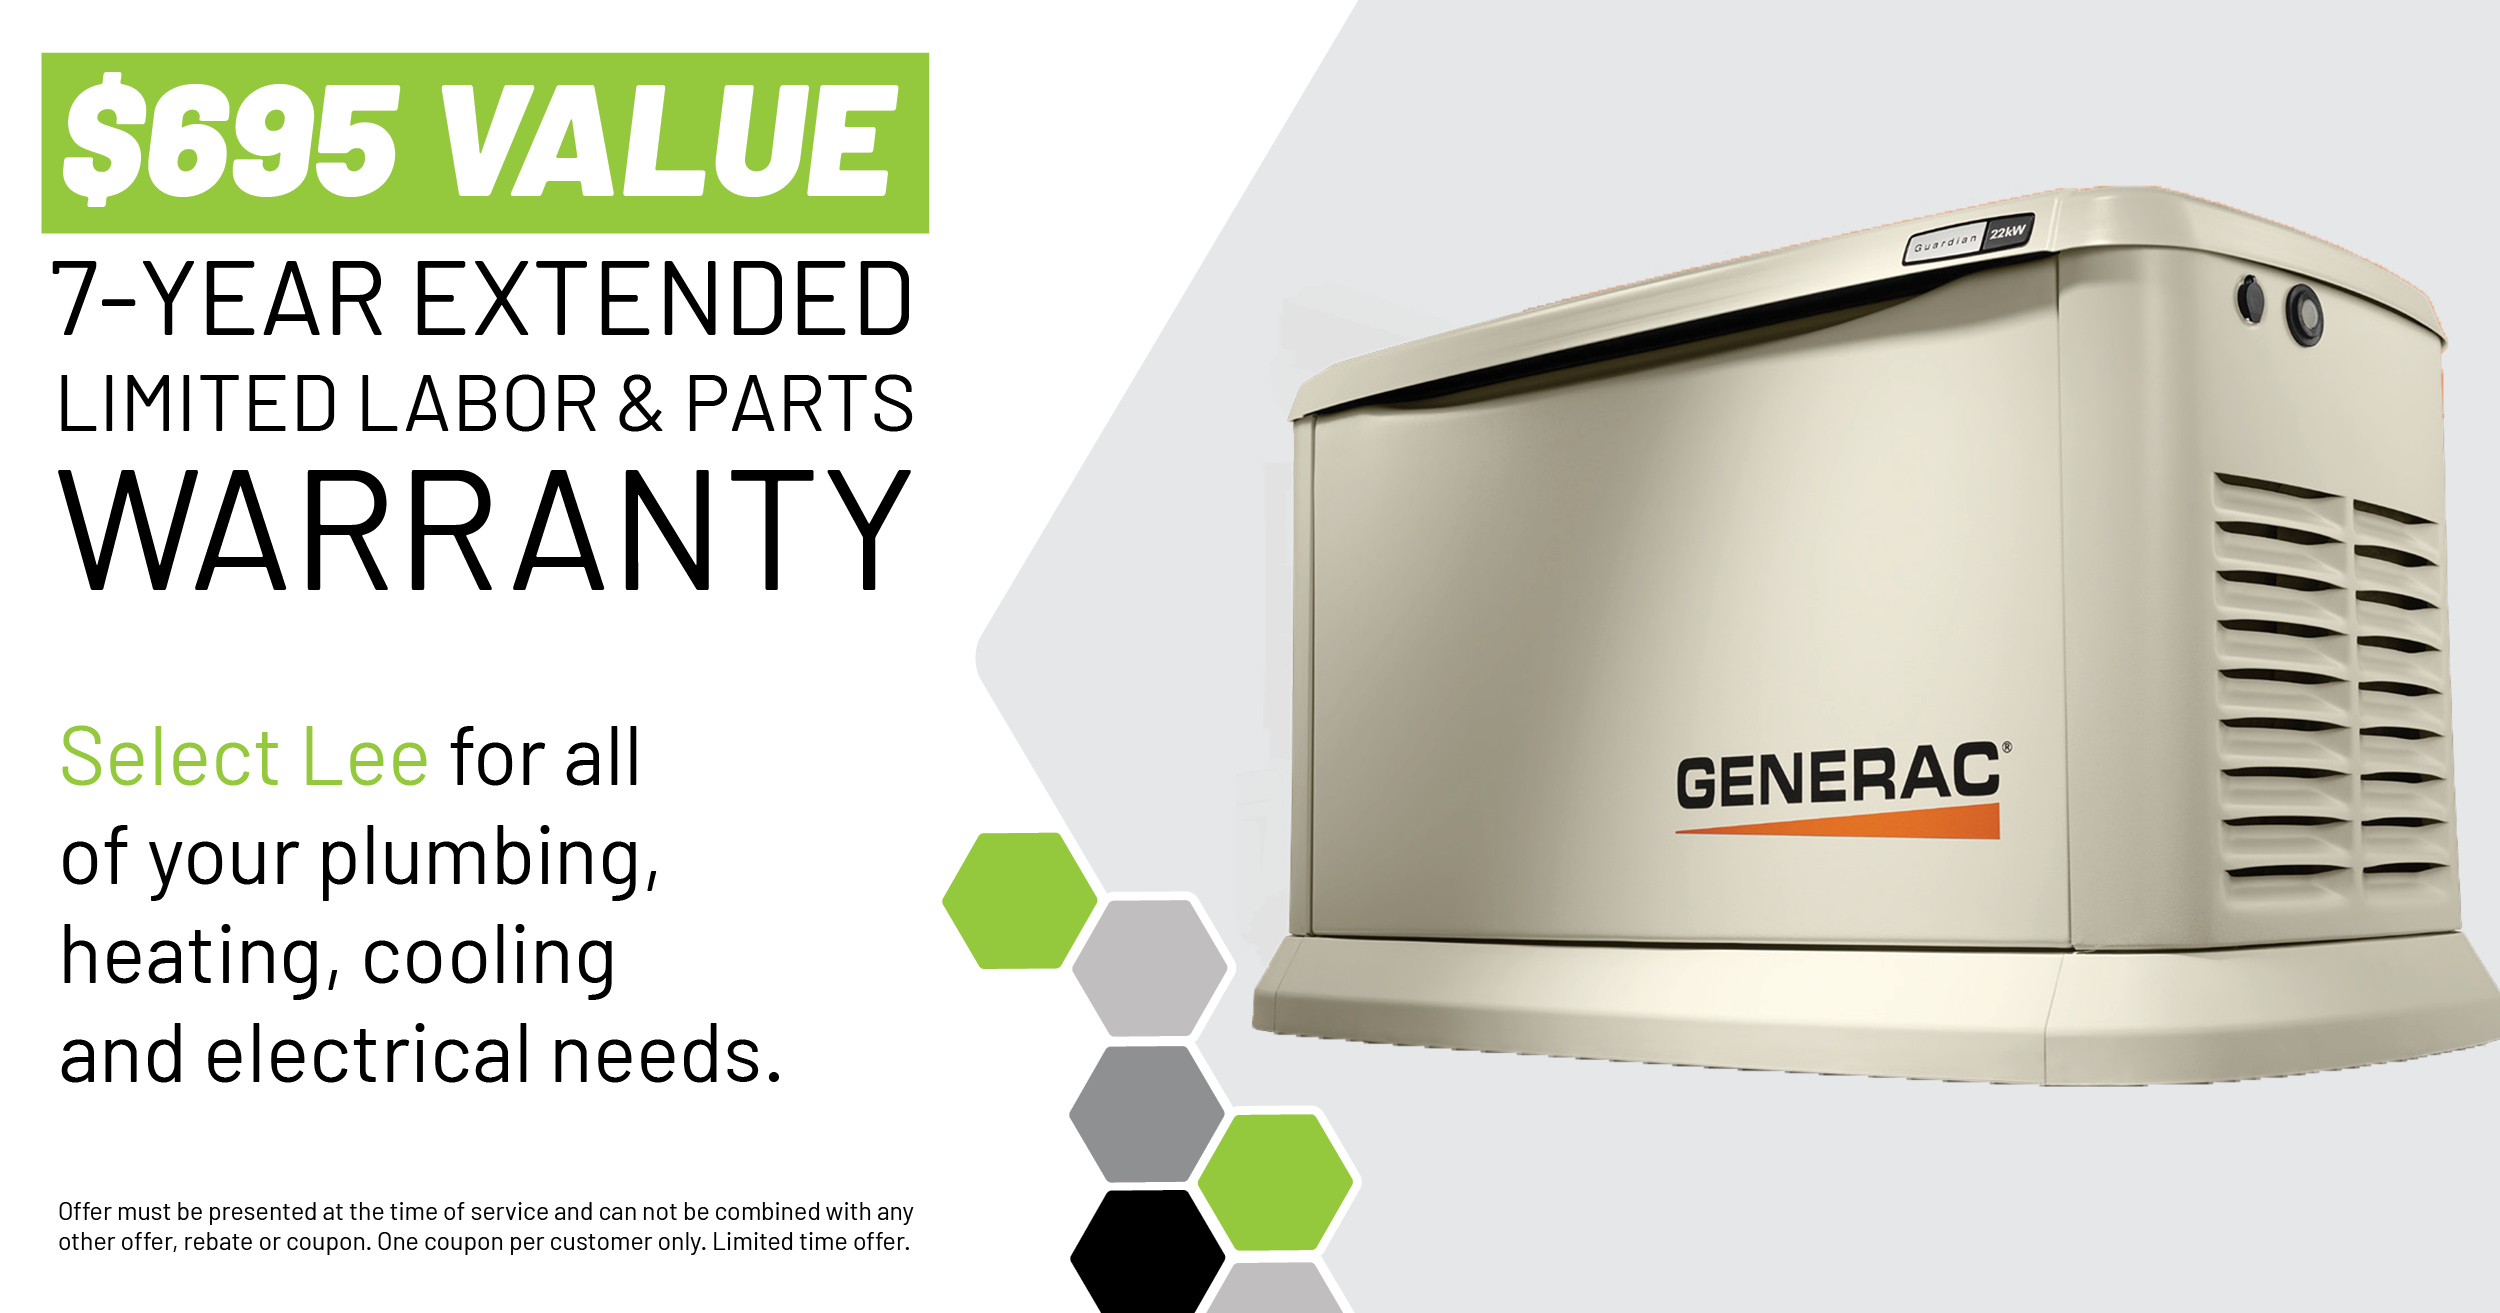 Generac Warranty Special | Lee Mechanical